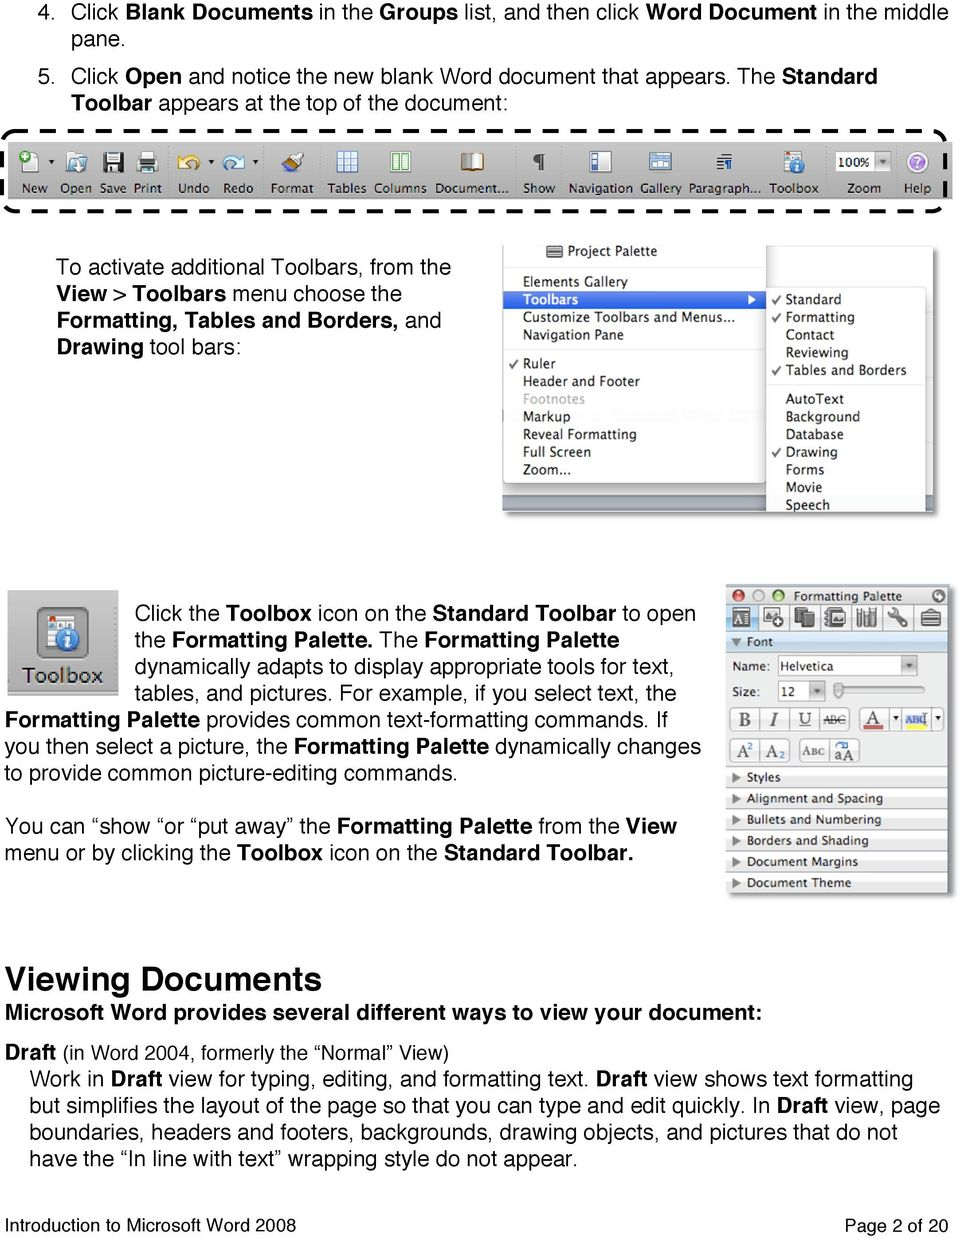 Toolbox icon on the Standard Toolbar to open the Formatting Palette. The Formatting Palette dynamically adapts to display appropriate tools for text, tables, and pictures.